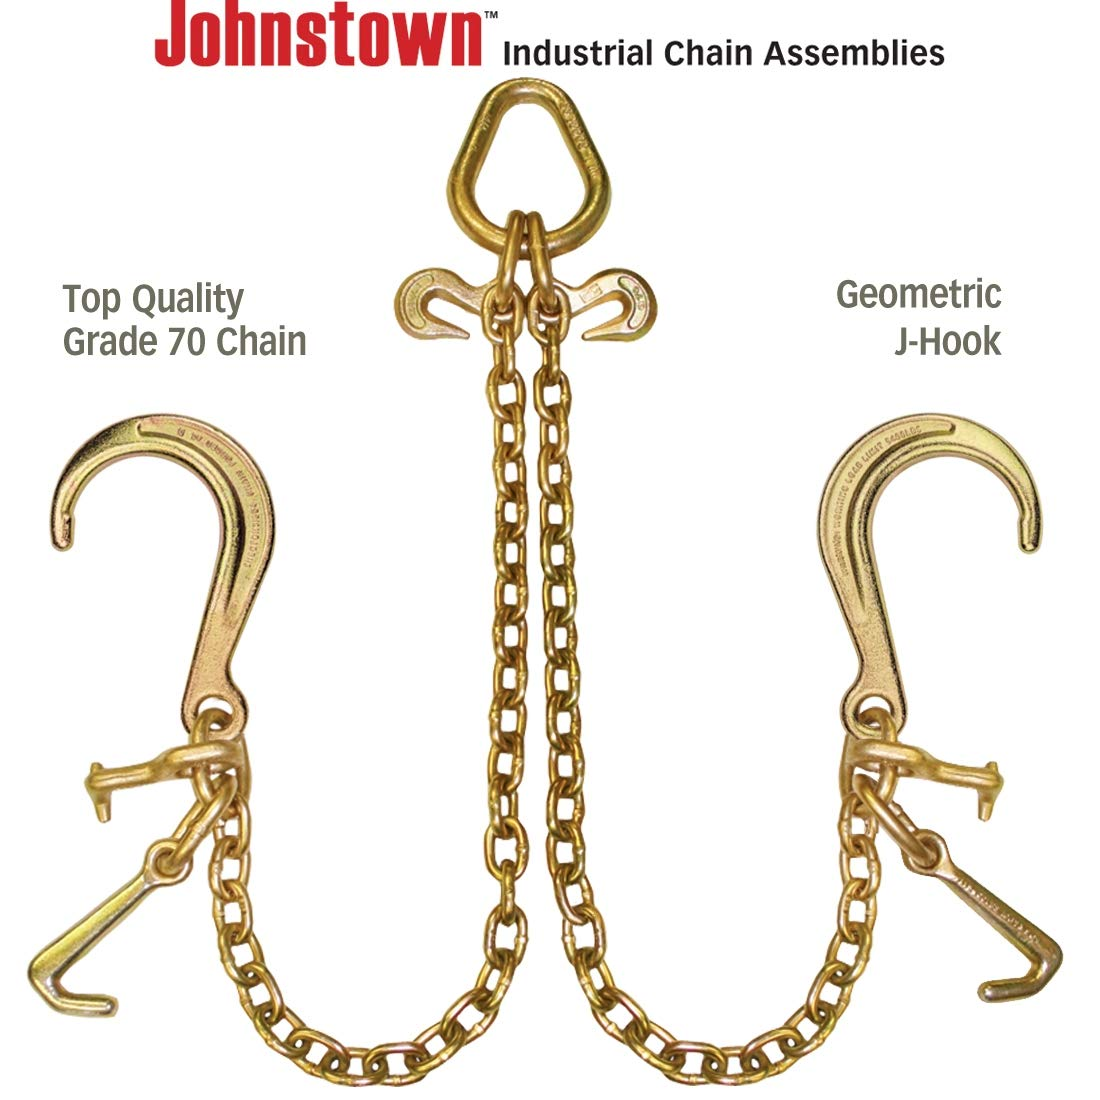 and Alloy T-Hooks 40 4700 lbs 4 Inch J-Hooks Johnstown Grade 70 Towing Chain Bridle with 8 SWL